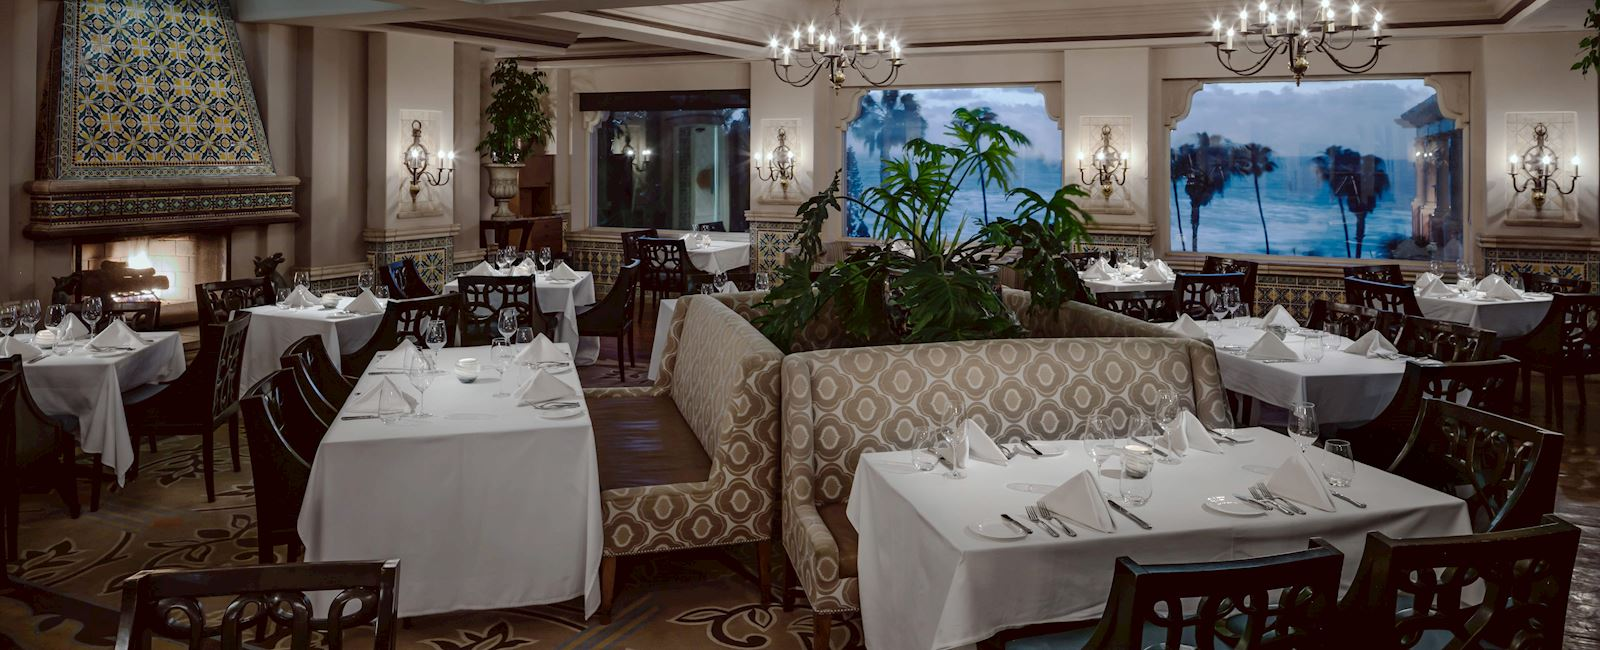 THE MED Dining Facilities at La Valencia Hotel and Spa, California